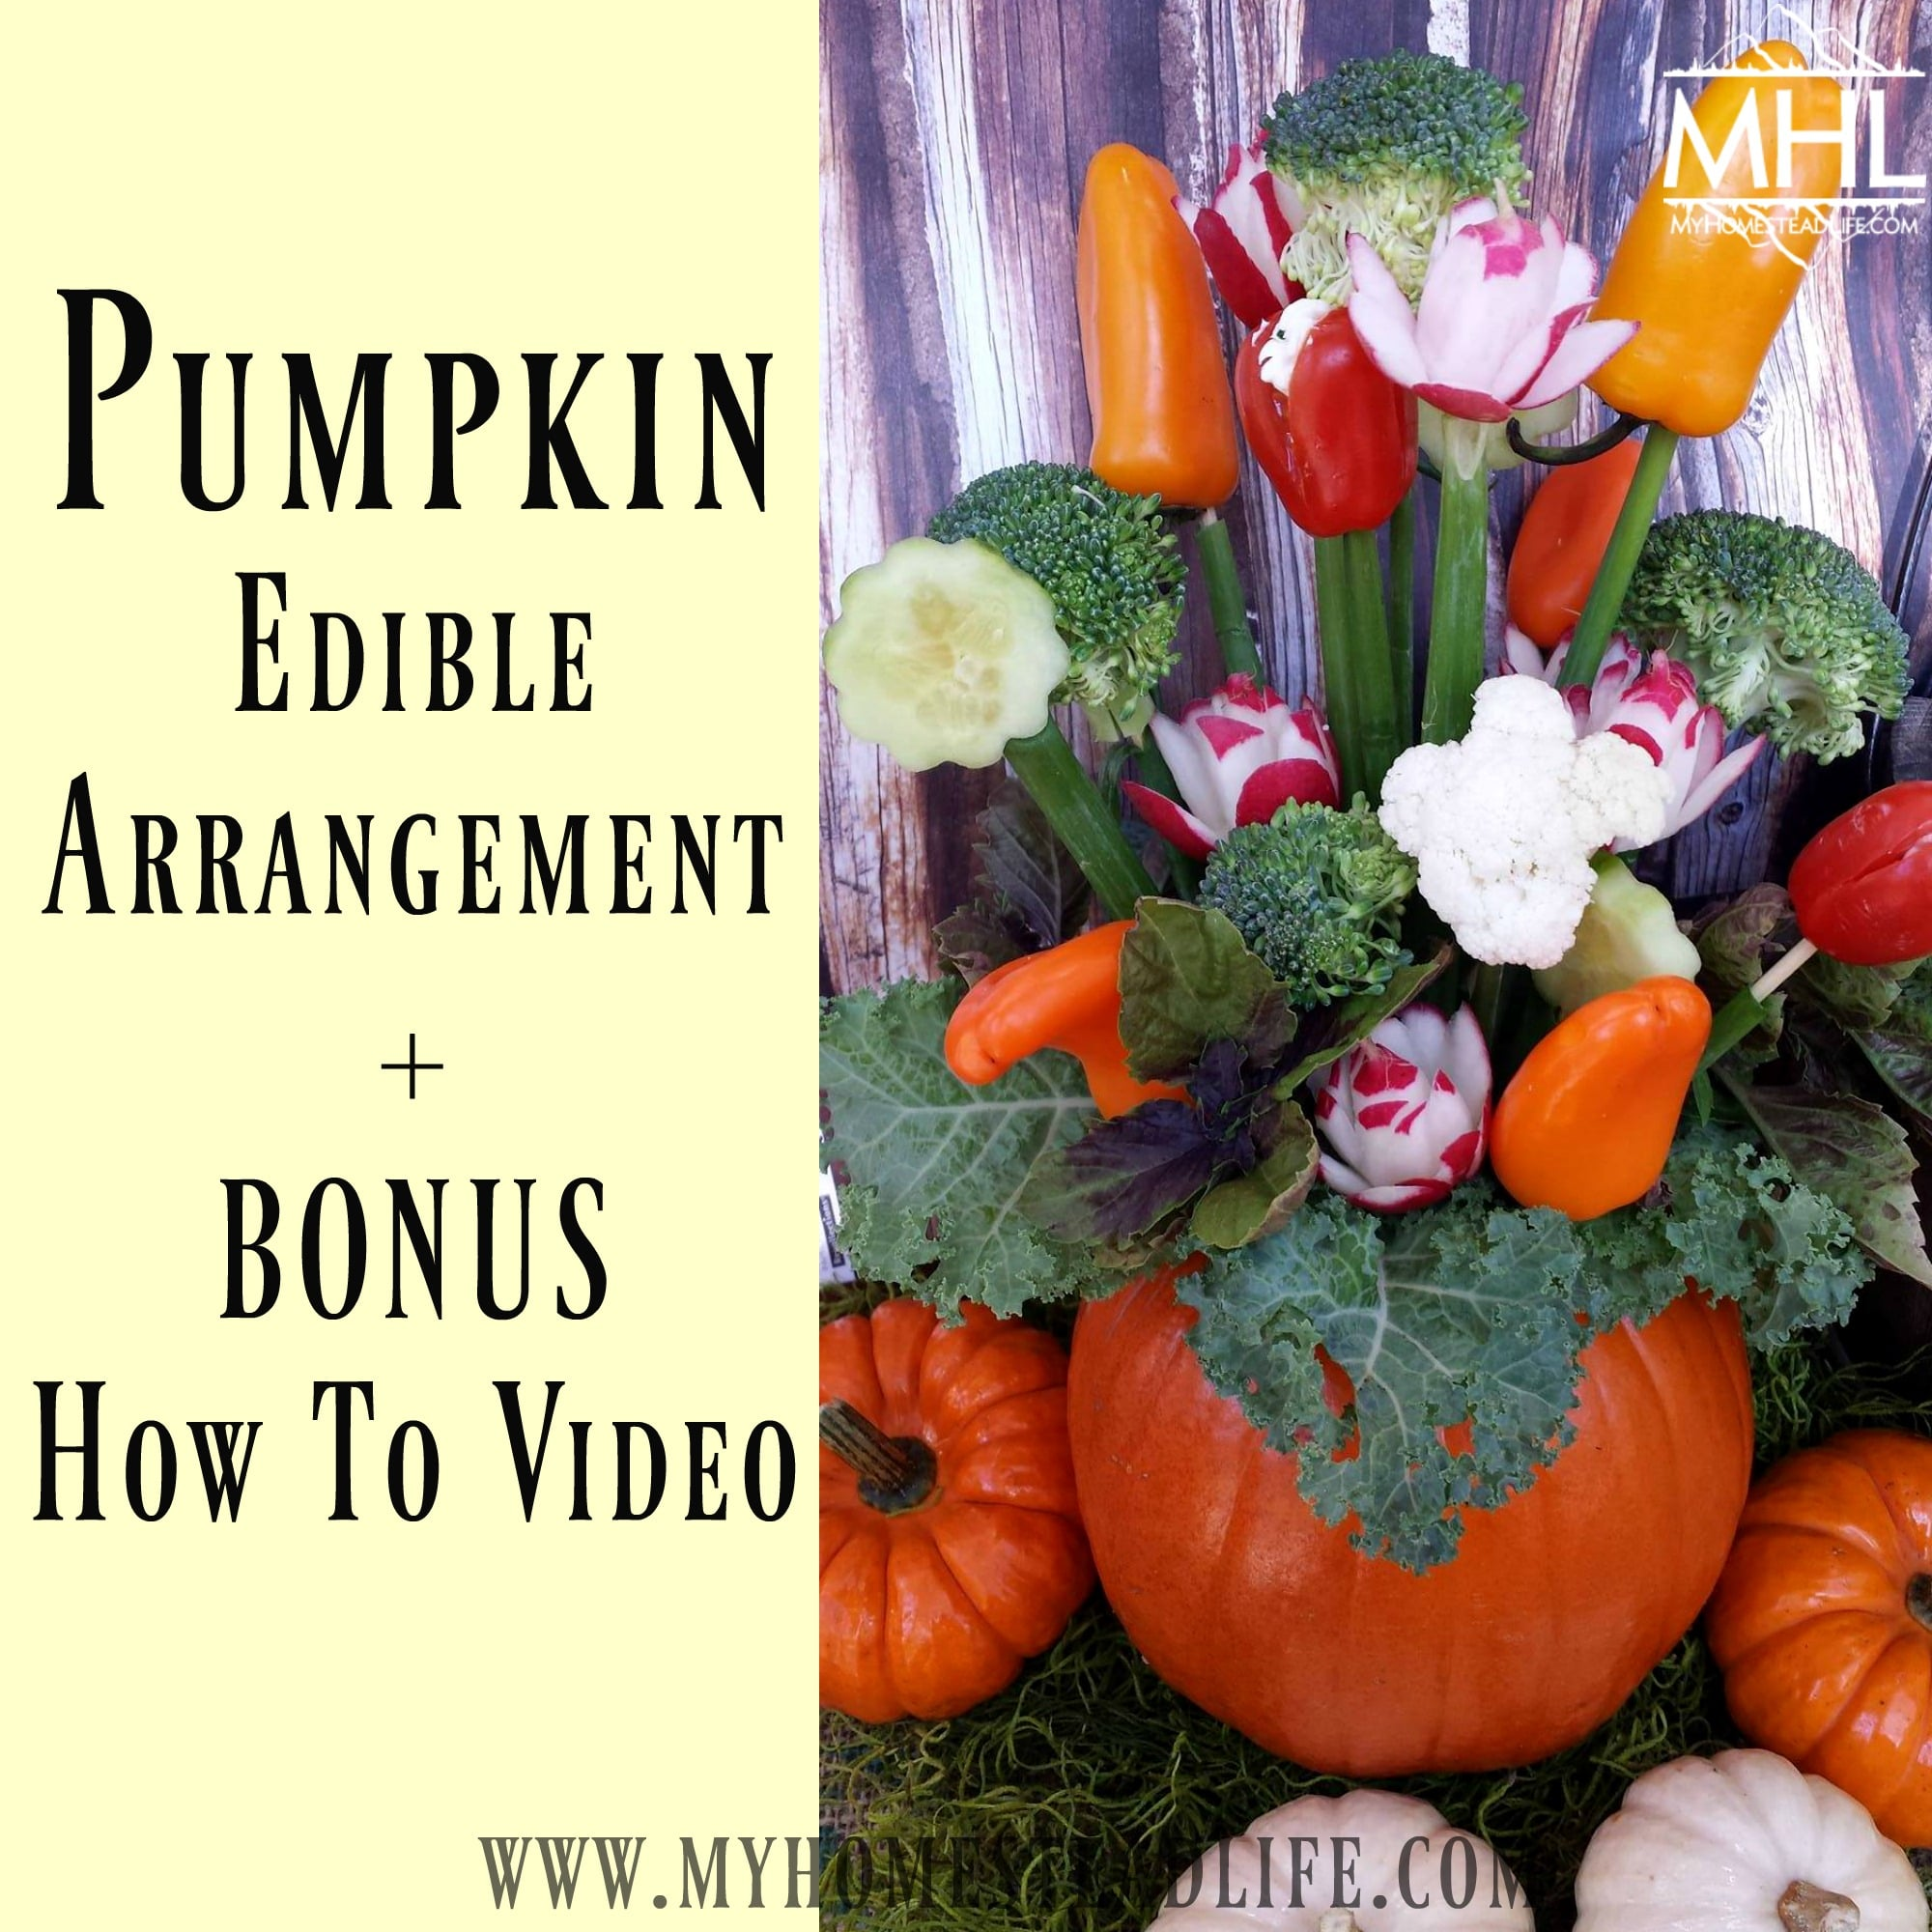 Pumpkin Edible Arrangement + BONUS How To Video